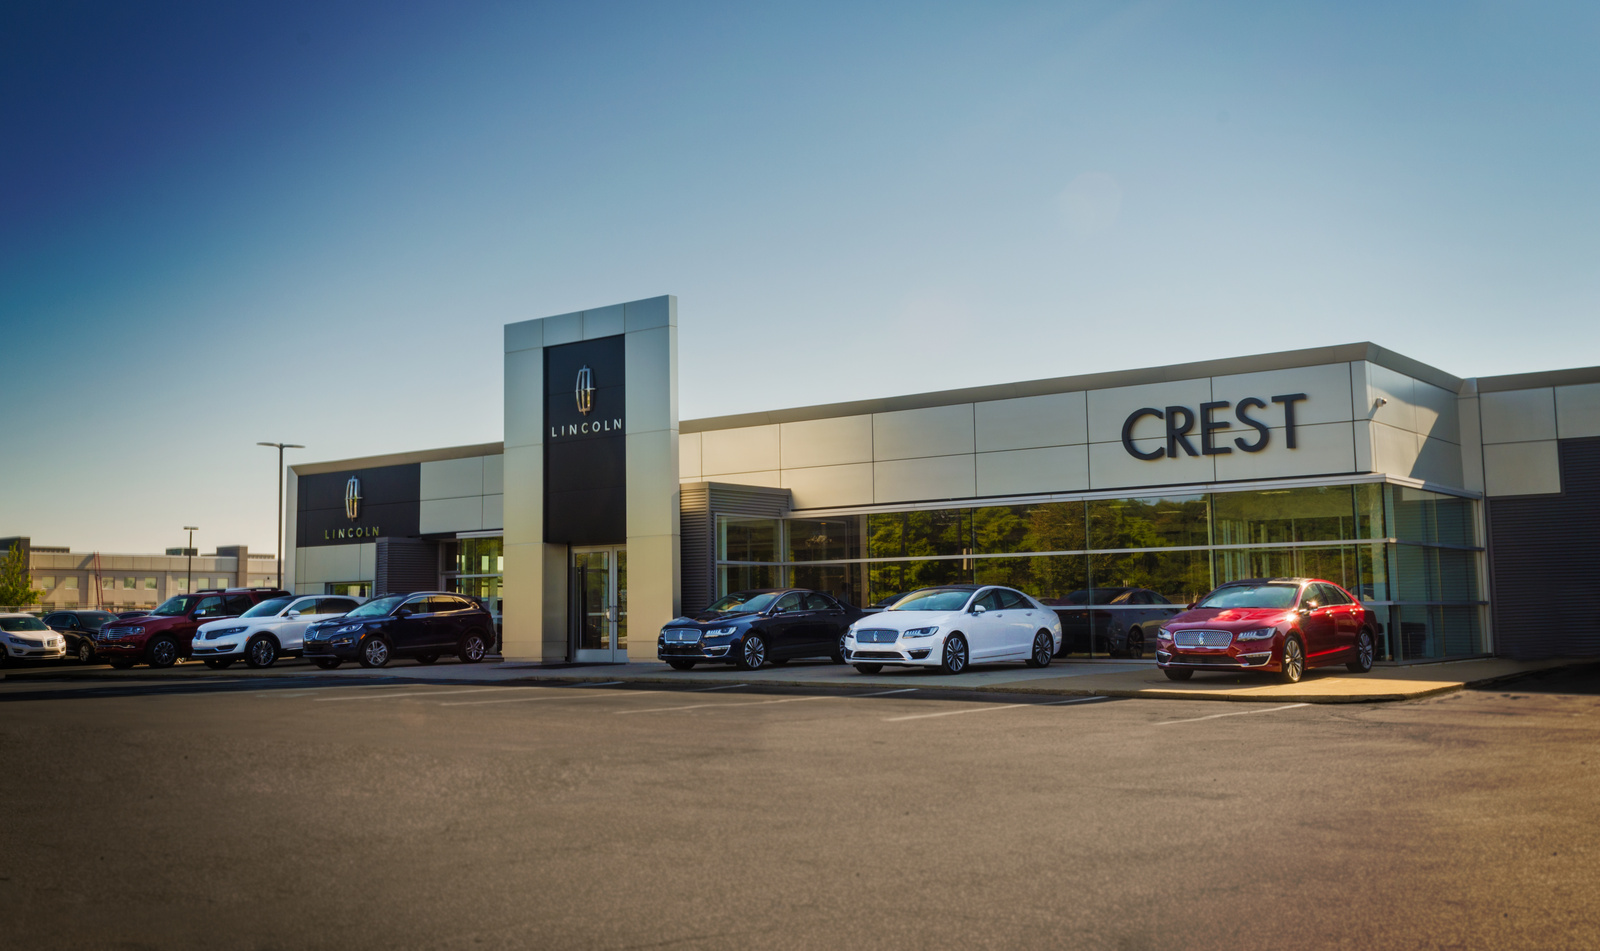 Lexus Dealers In Michigan >> Crest Lincoln - Sterling Heights, MI: Read Consumer reviews, Browse Used and New Cars for Sale